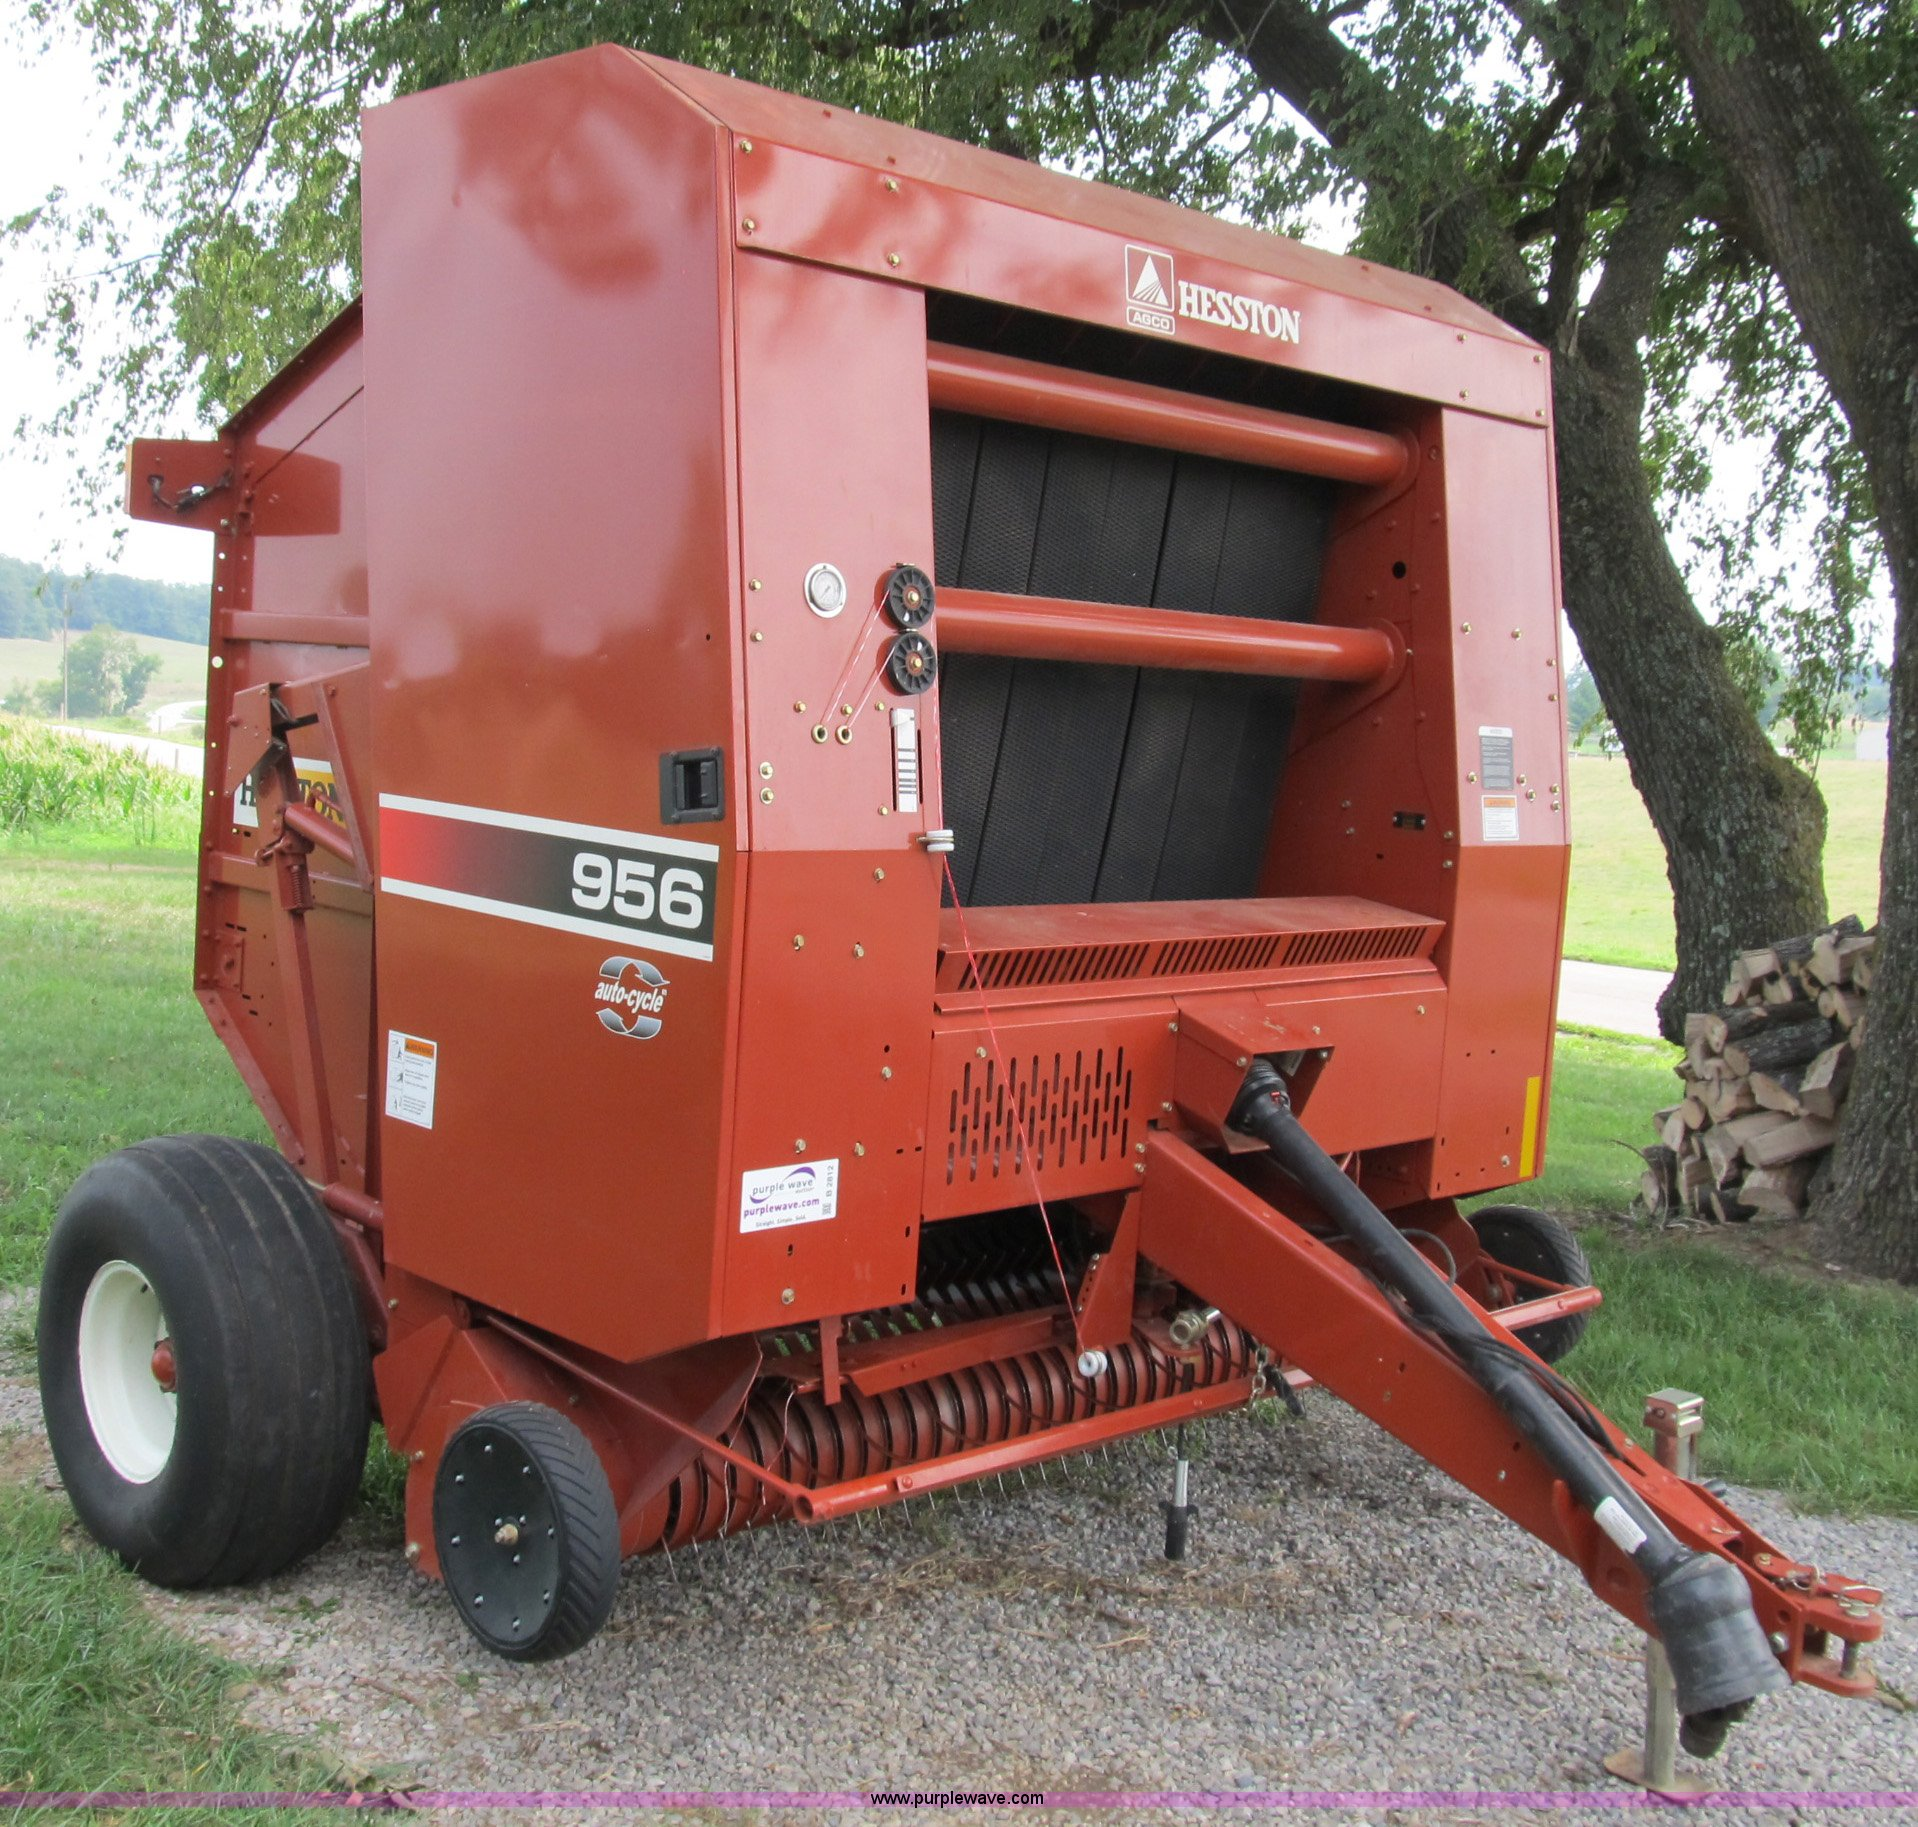 ... Array - hesston 956a round baler owners manual rh emailcanvas com br